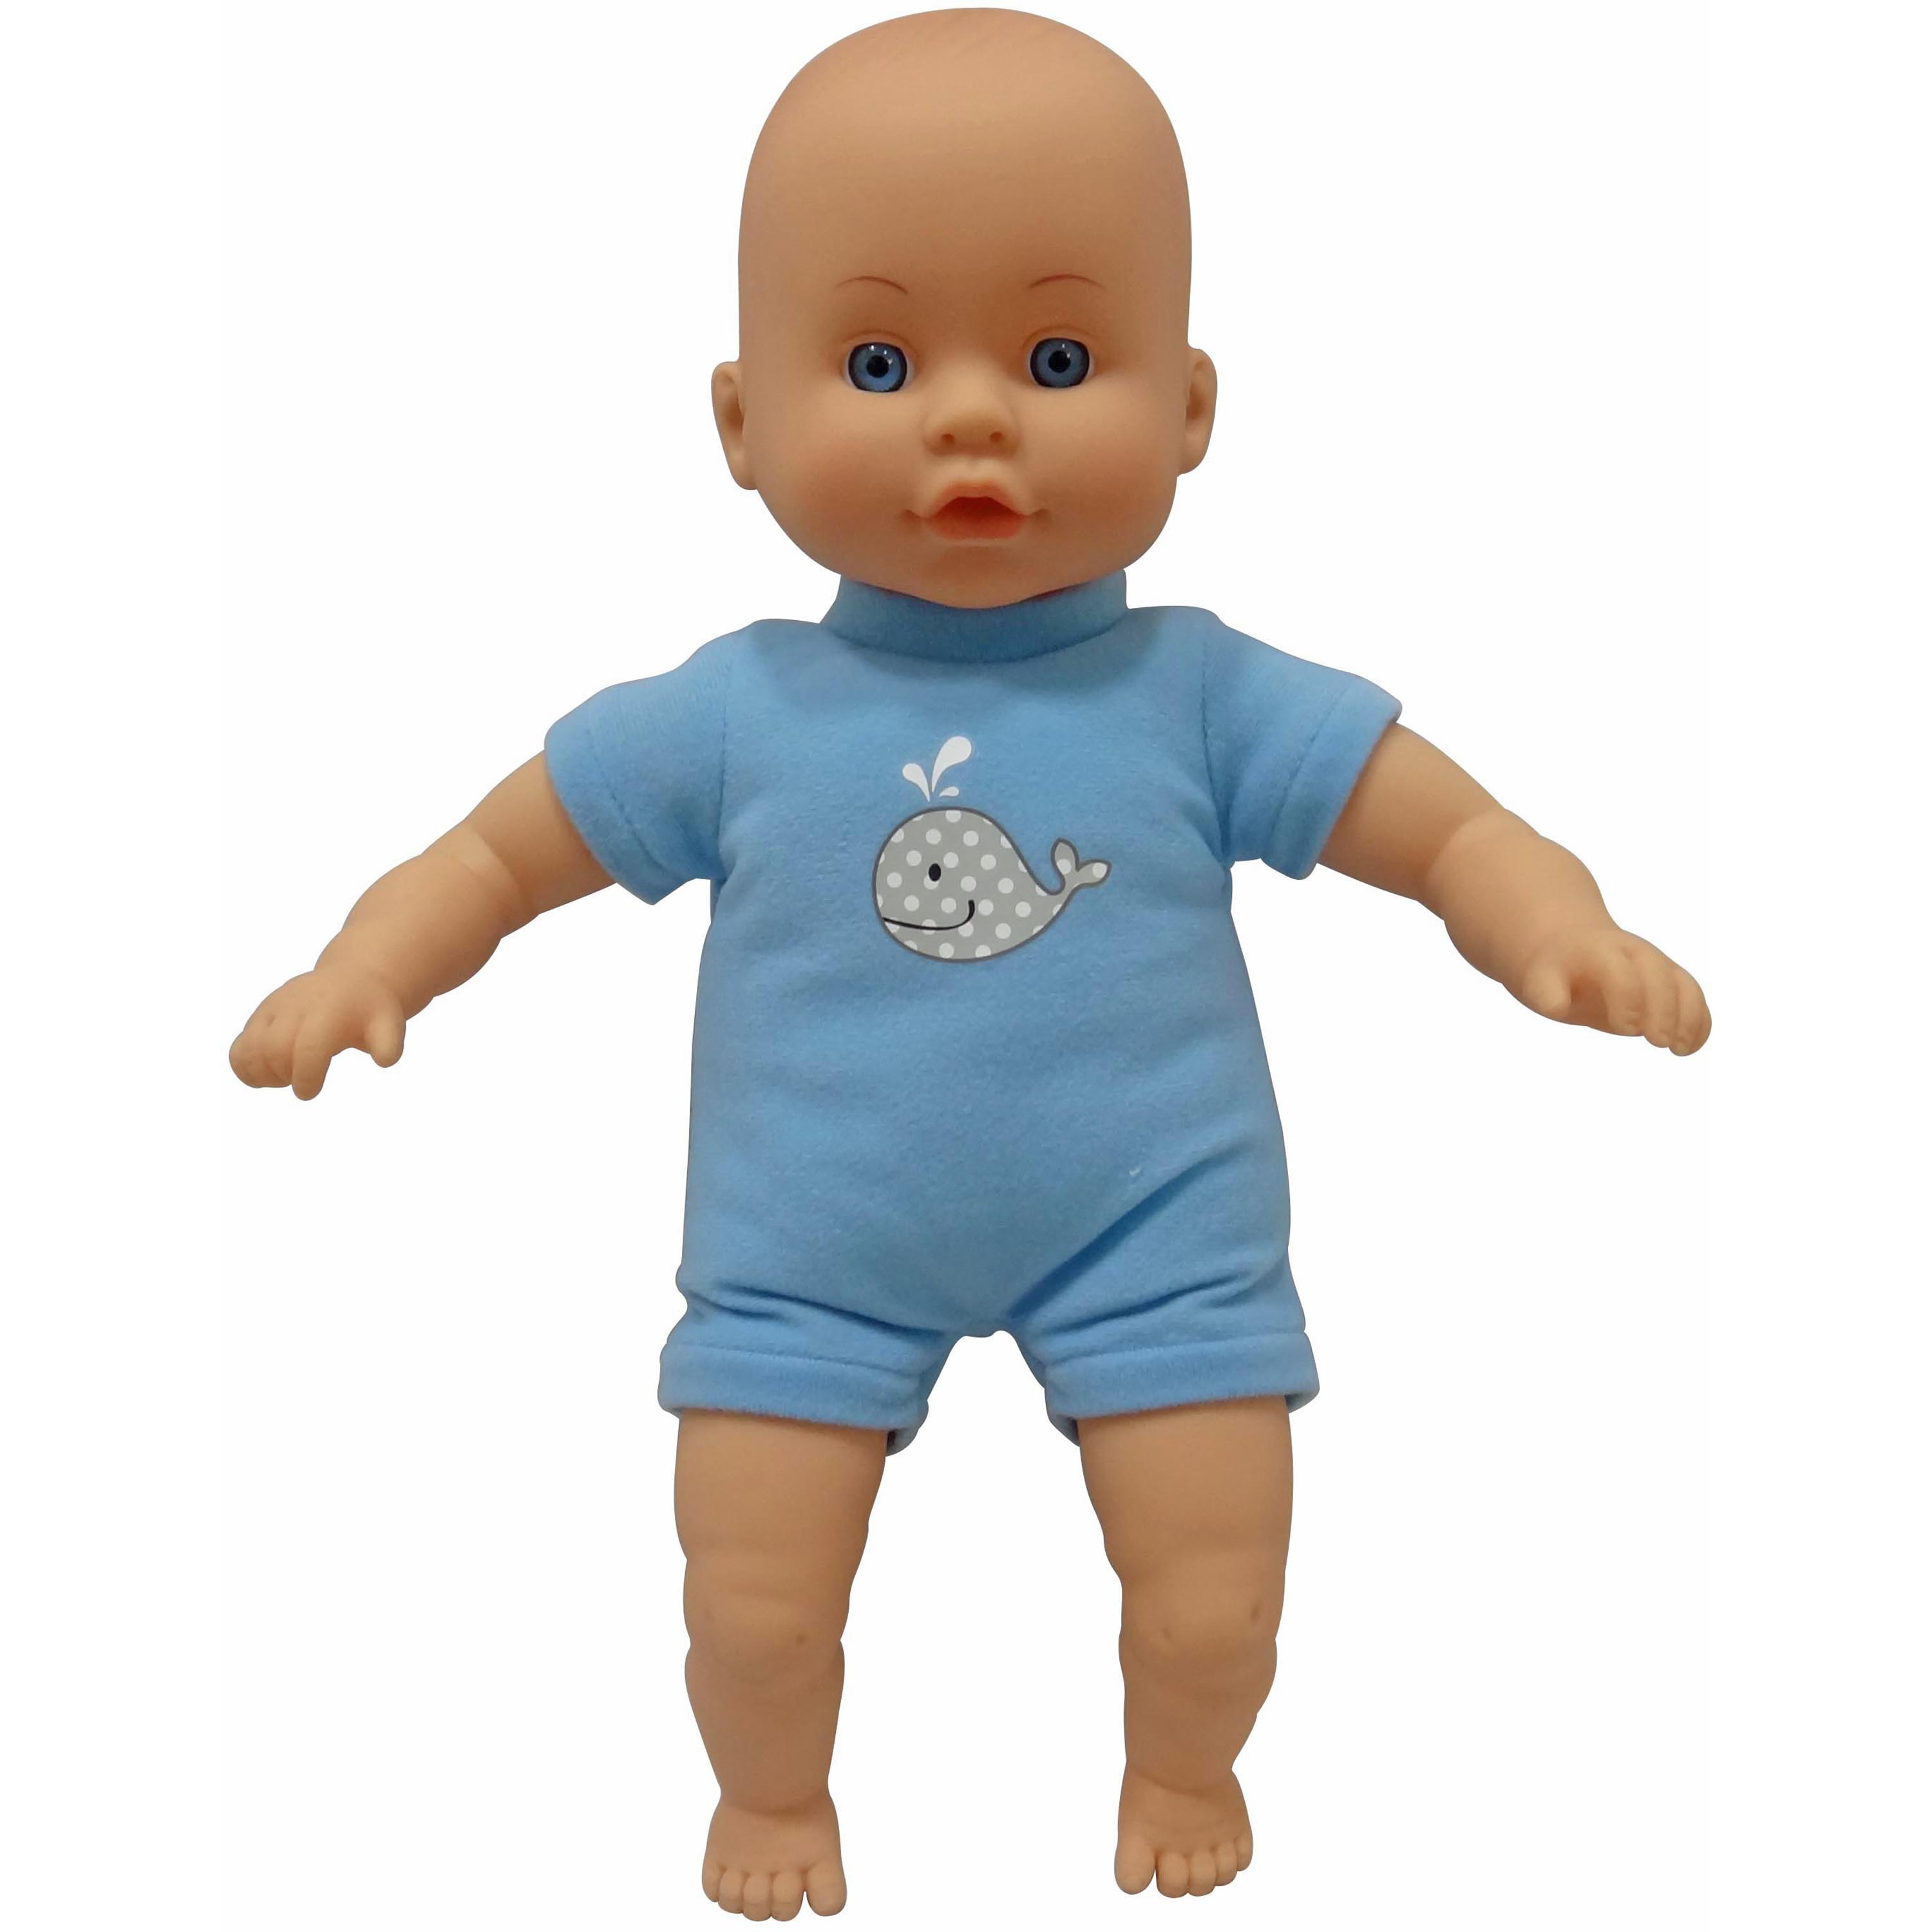 My Sweet Love 13-inch Soft Baby Doll, Blue Outfit